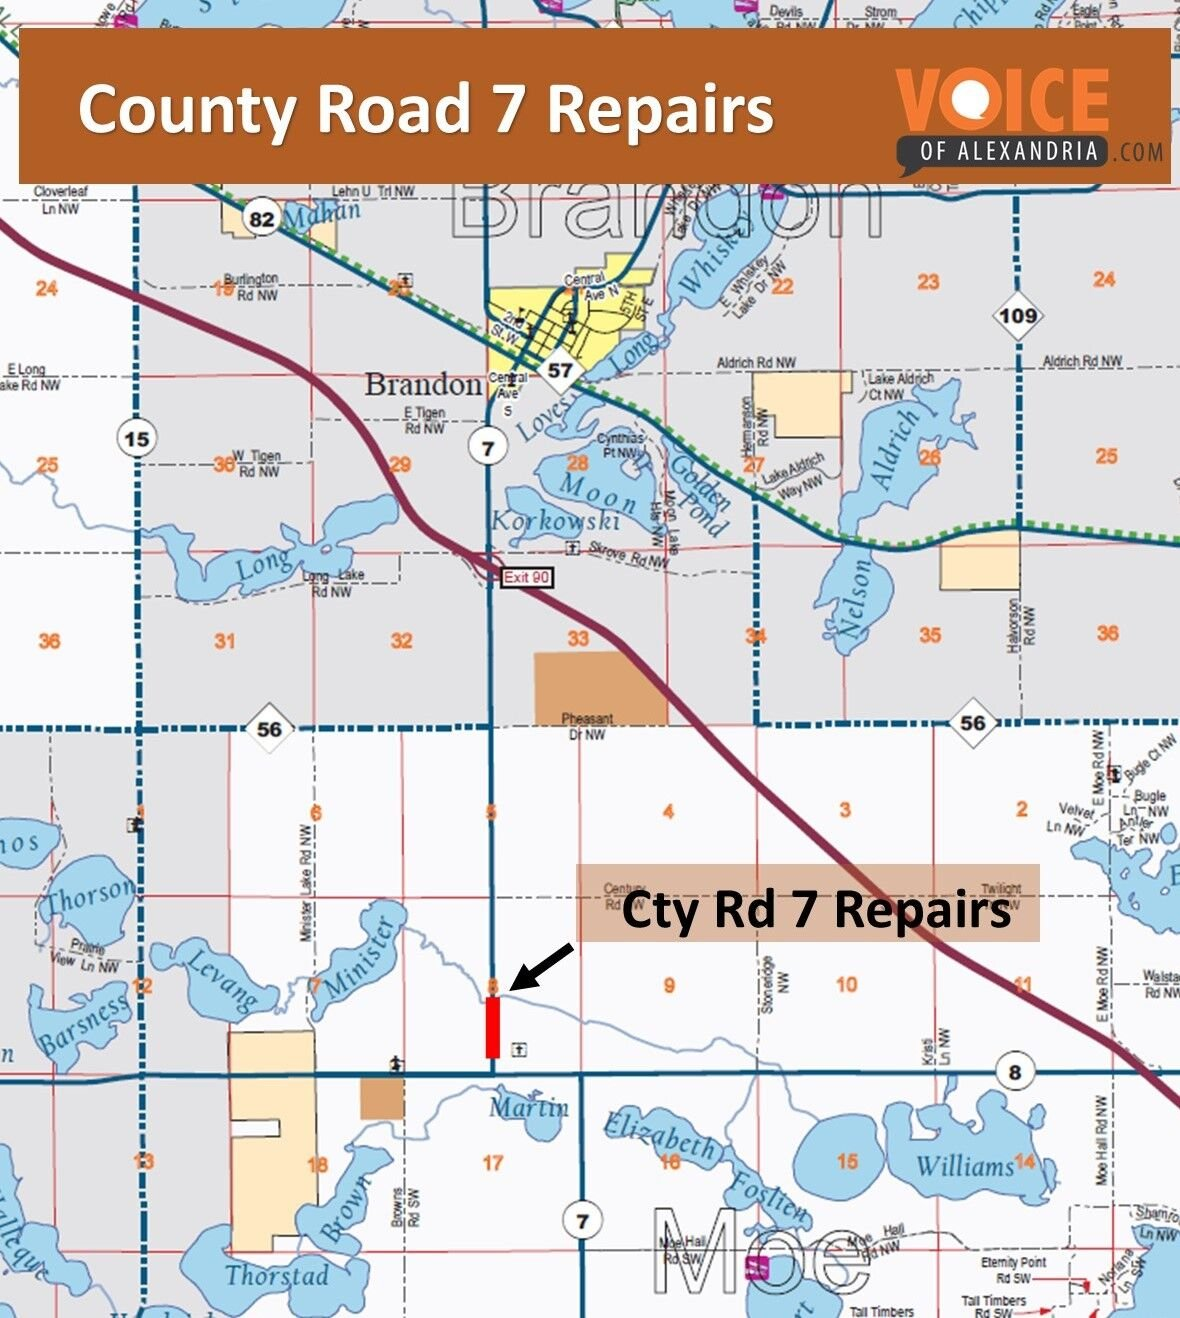 Road Repairs on Doug. Cty Rd 7